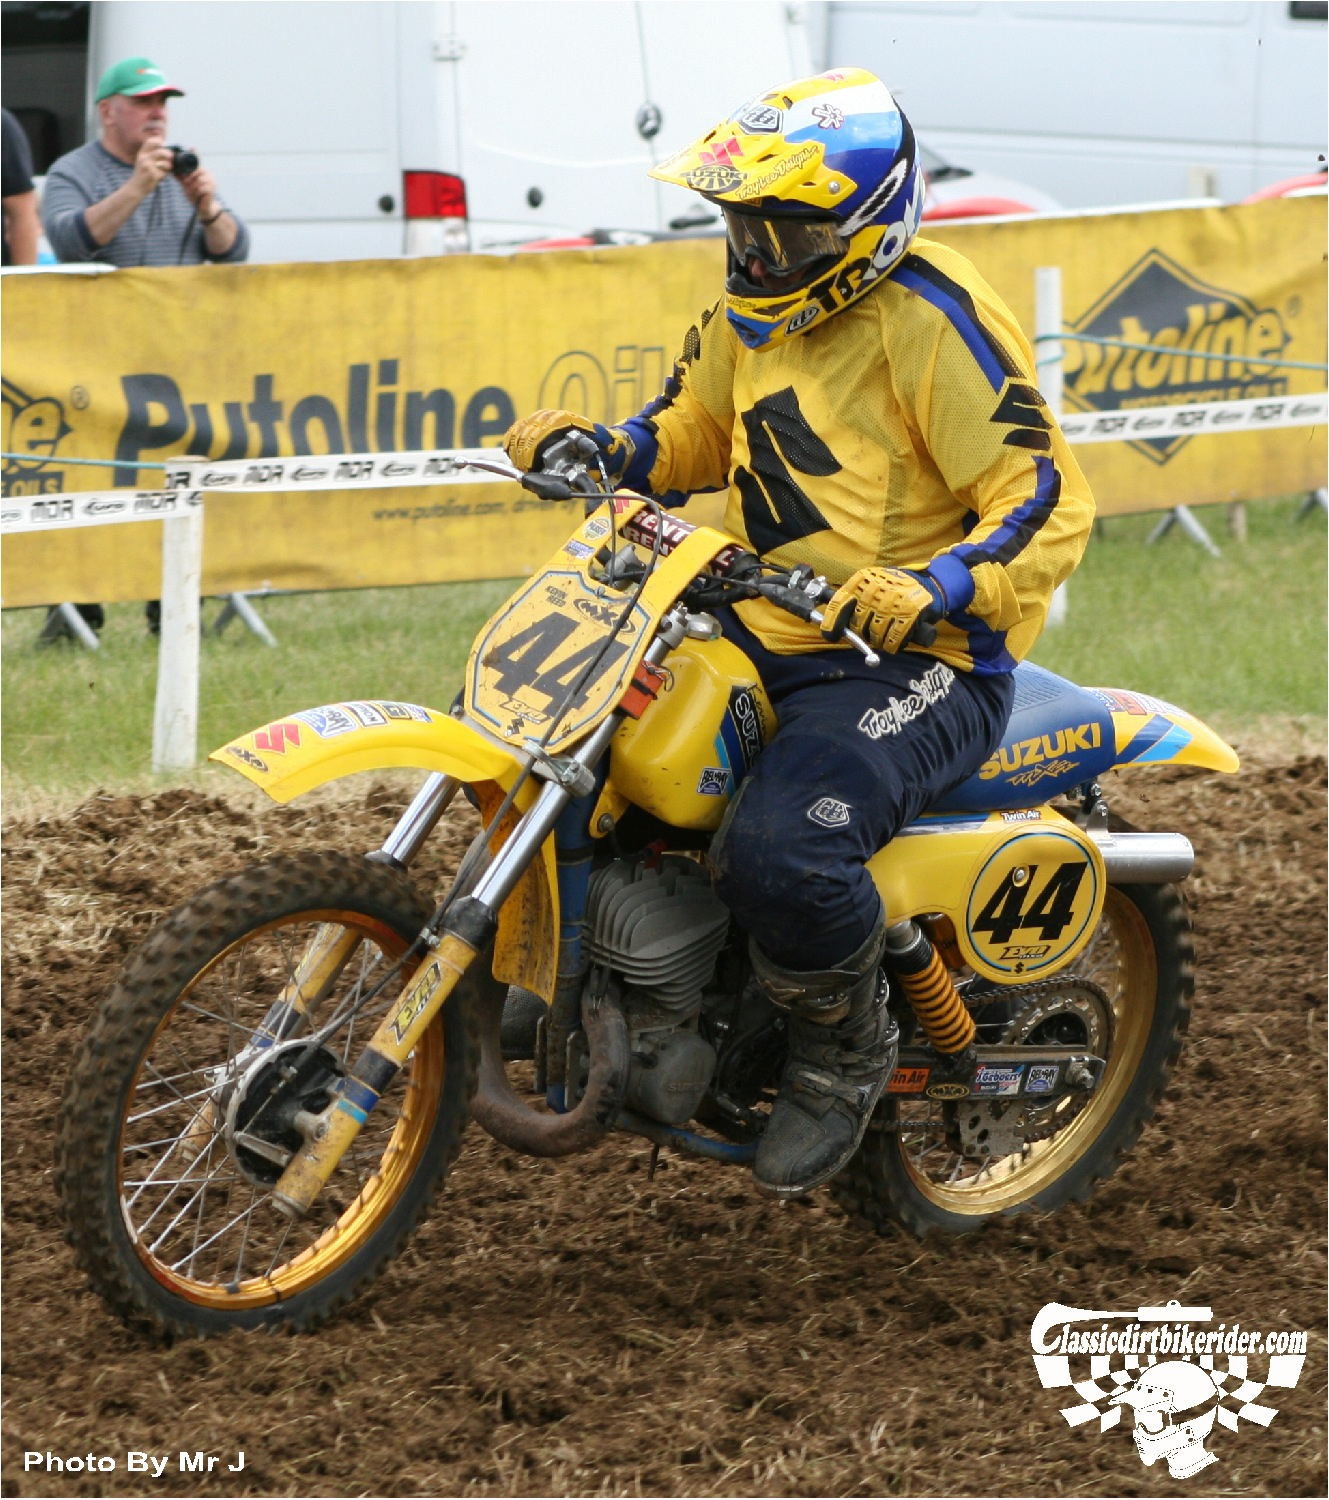 king of the castle 2015 photos Farleigh Castle twinshock motocross classicdirtbikerider.com 96